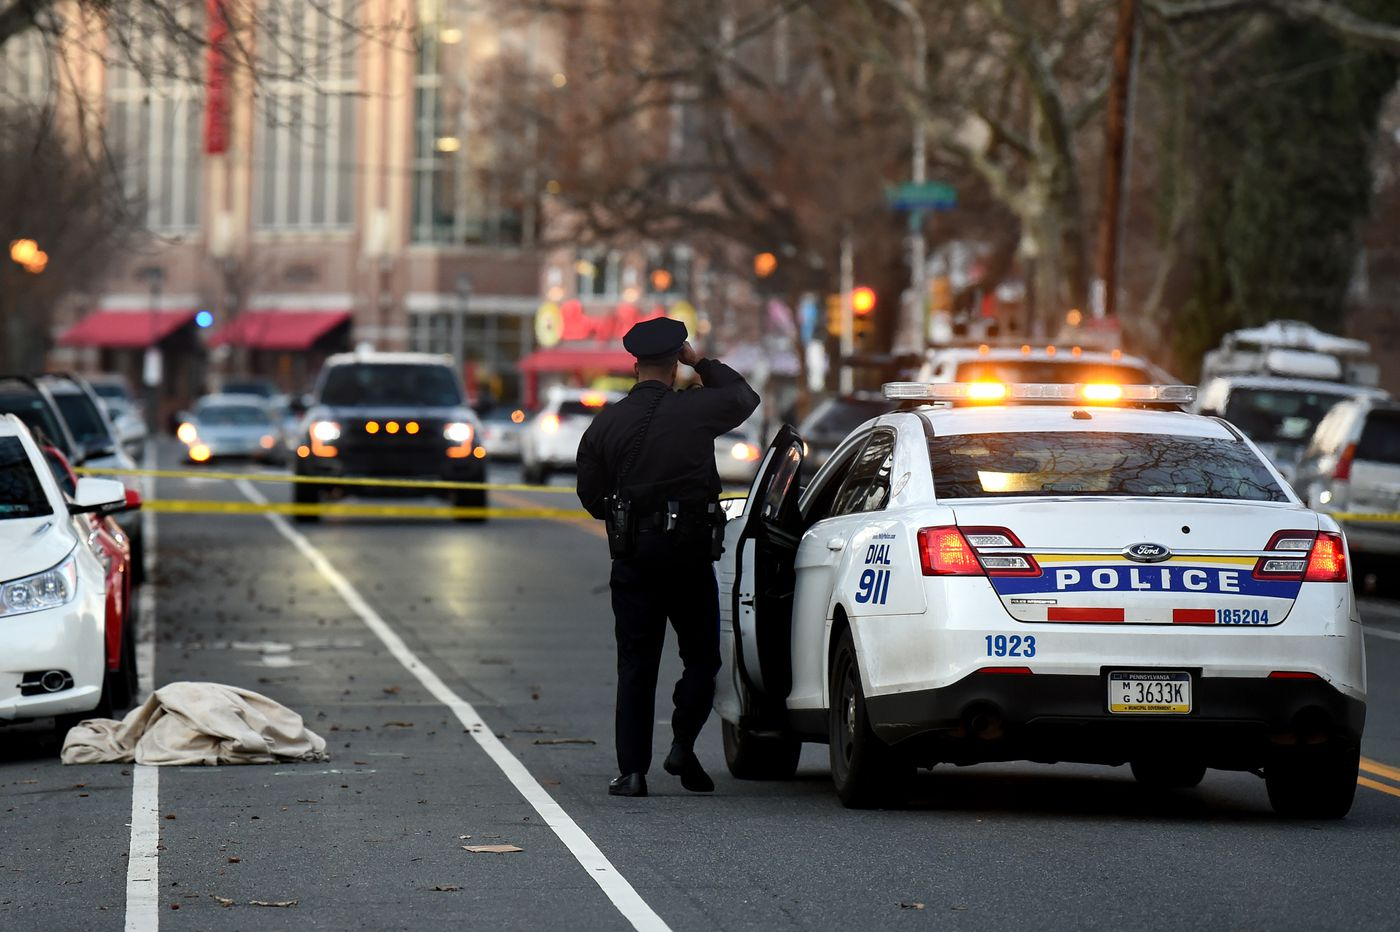 Philly deserves more answers on the shiny new plan to stop the shootings | Mike Newall